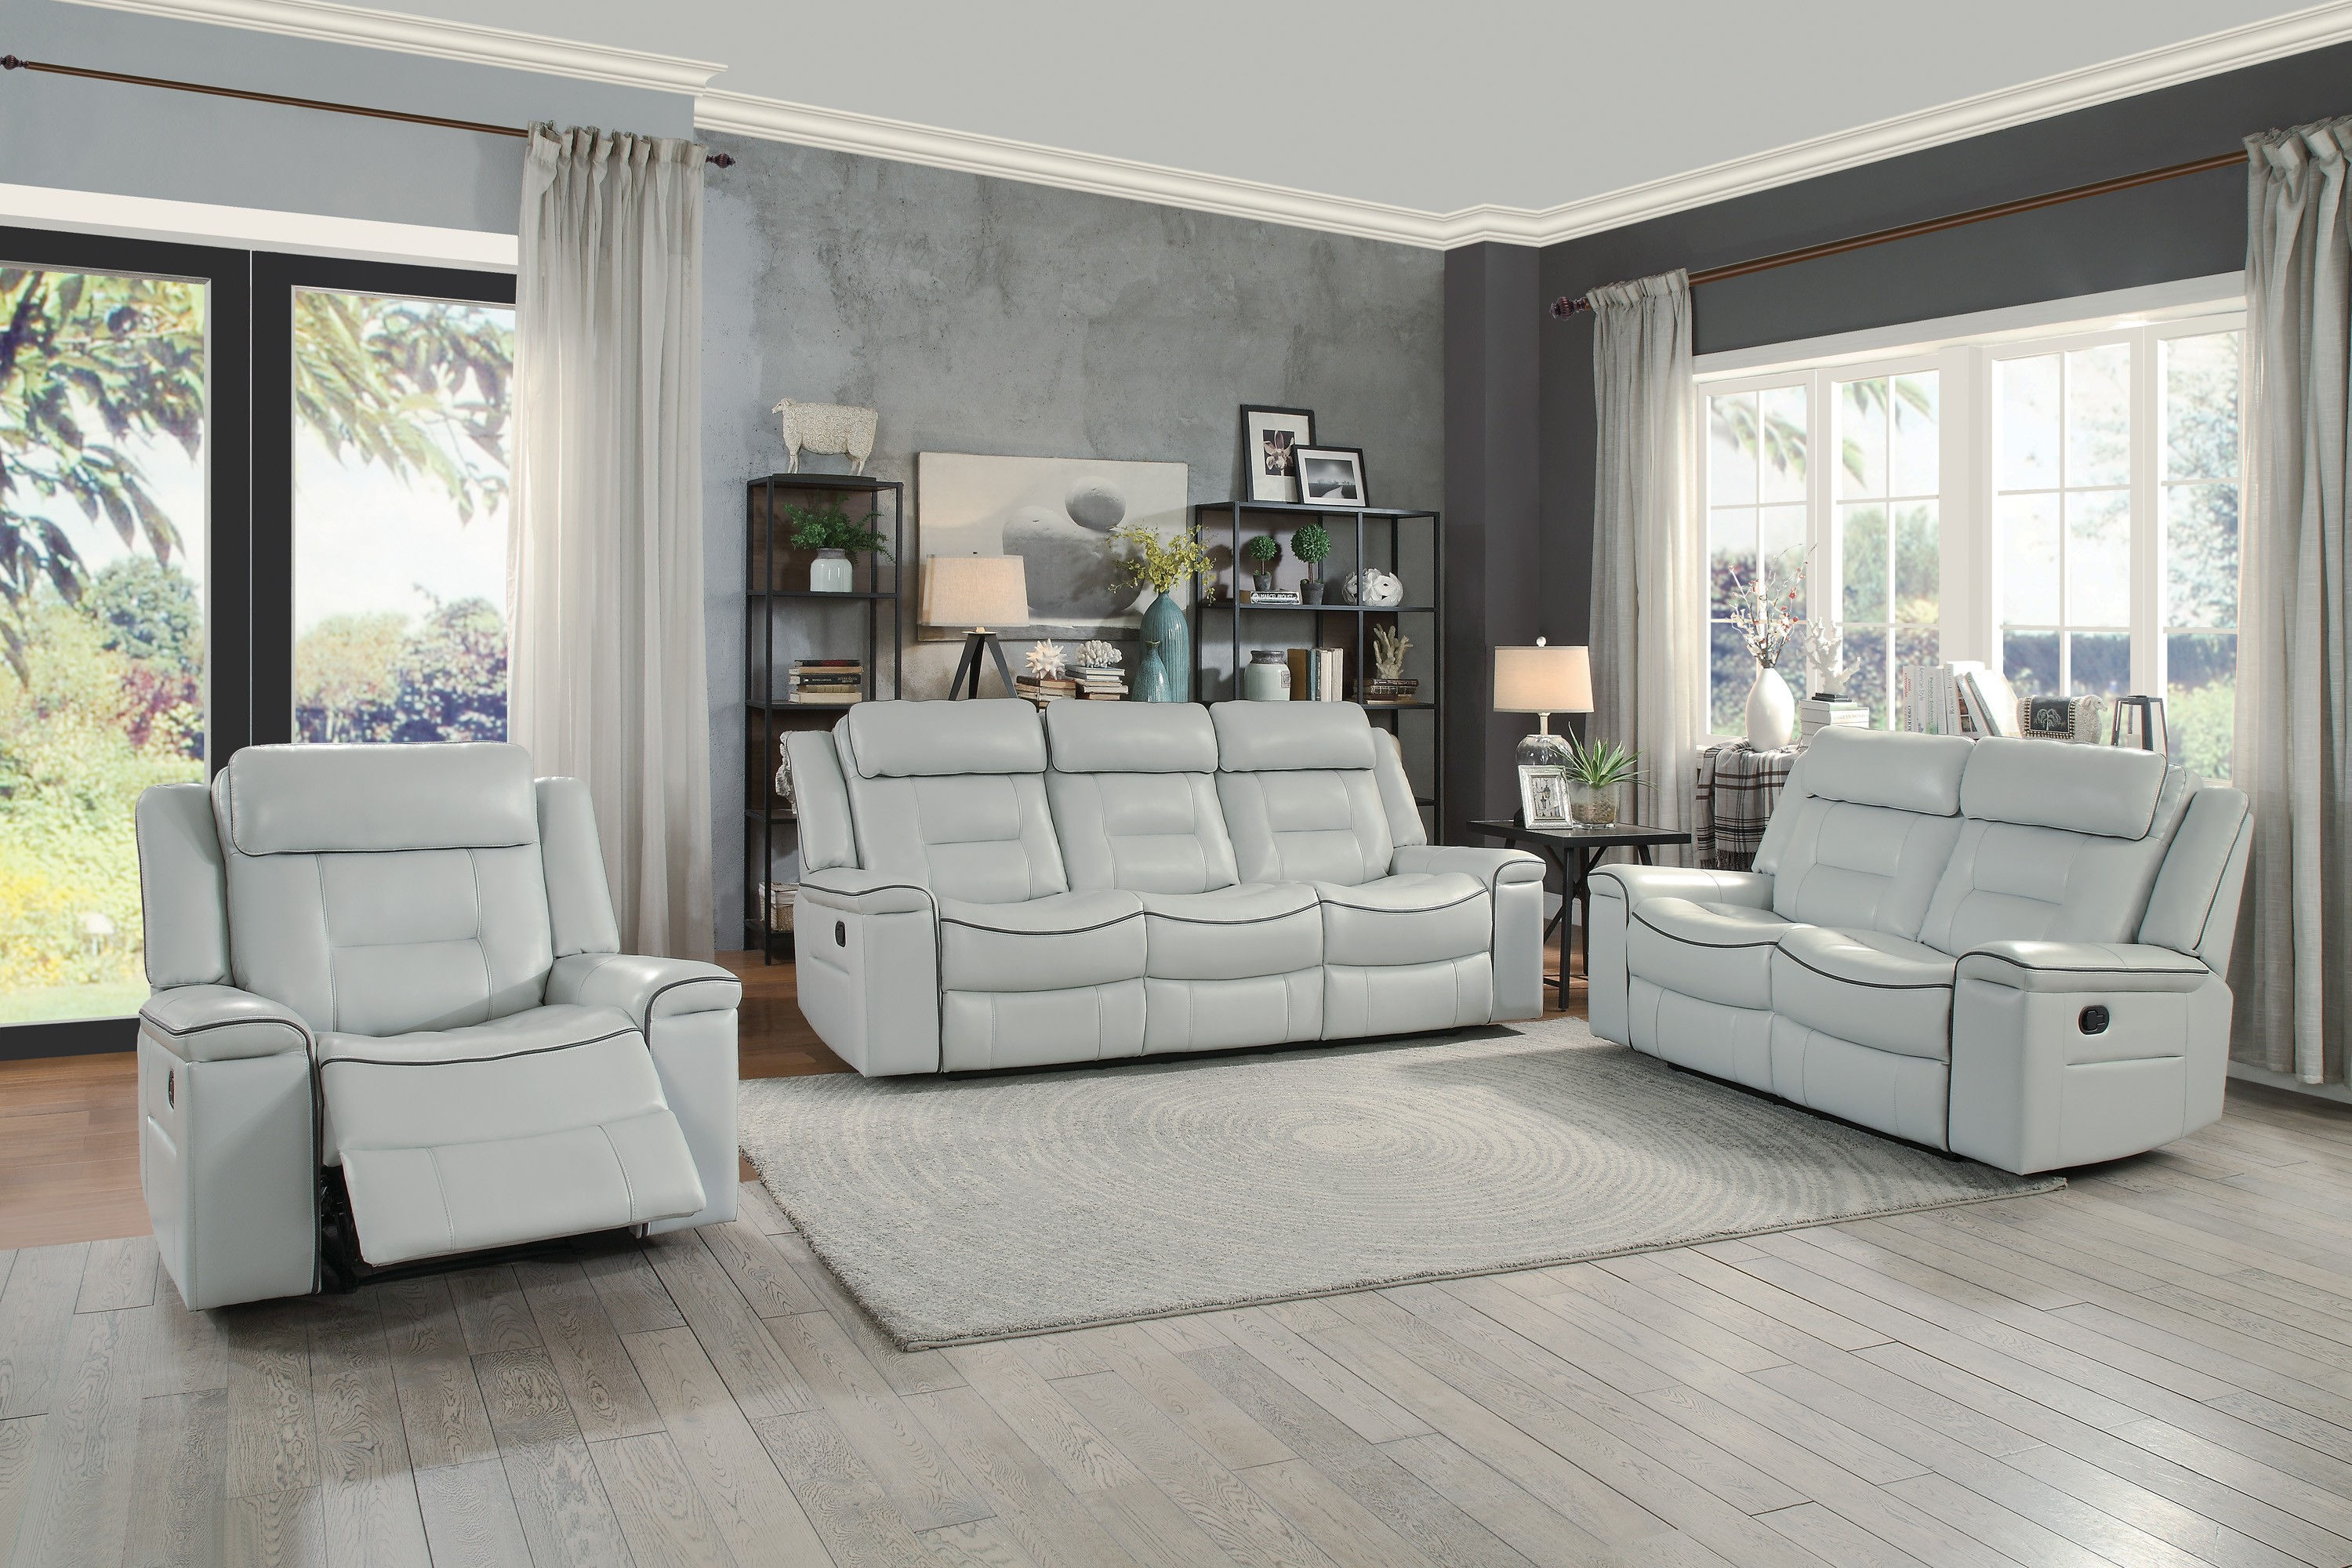 Home Elegance Darwan Light Gray Leather 3pc Living Room Set